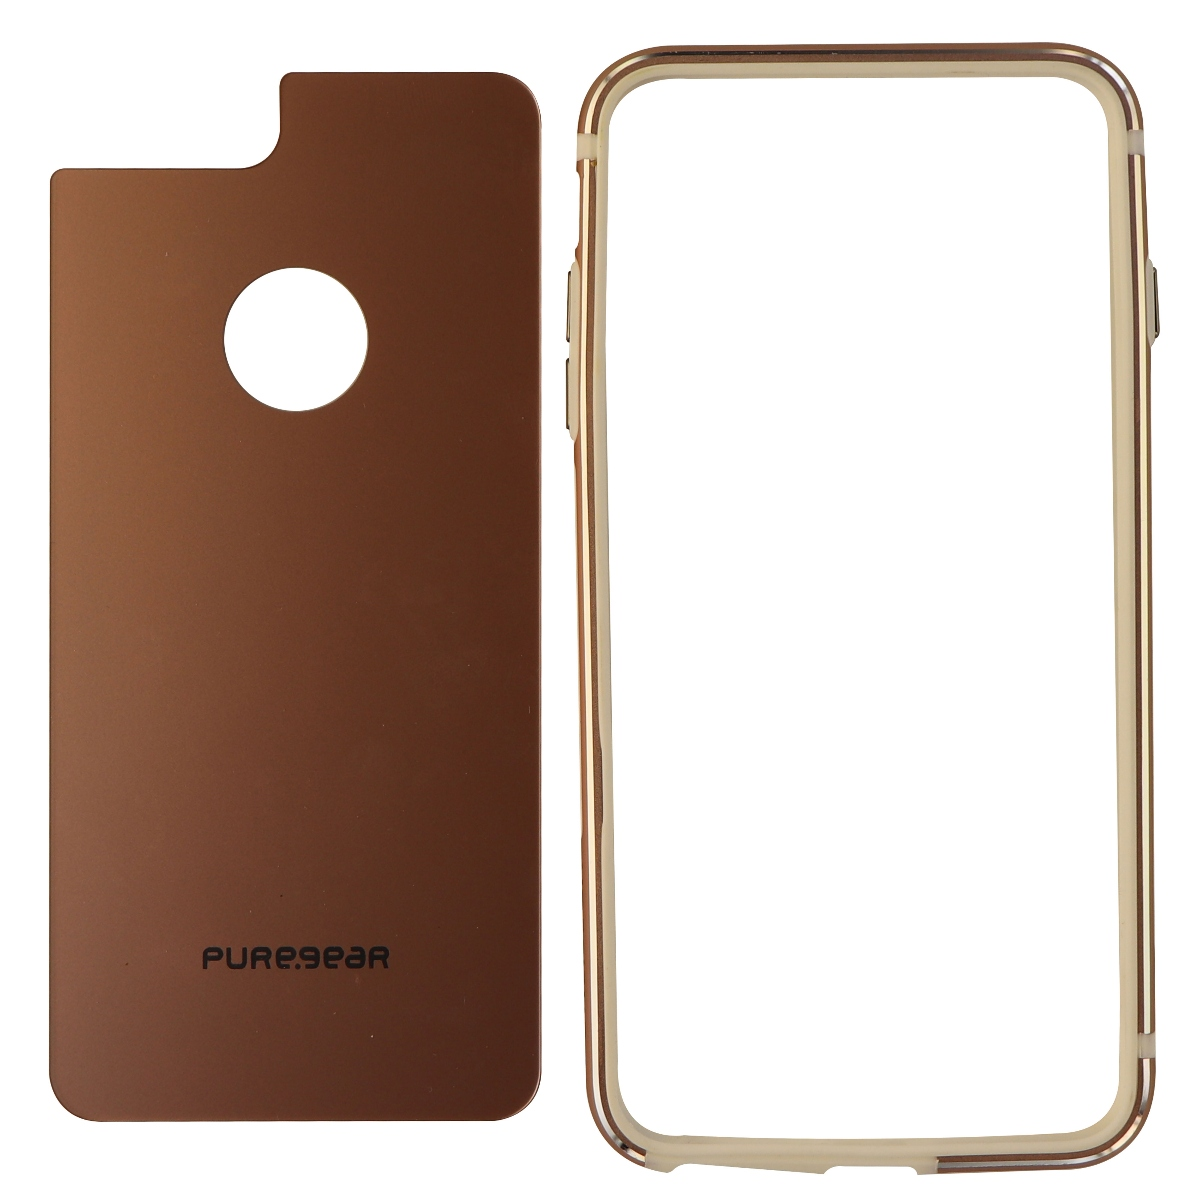 PureGear GlassBak 360 Metal Bumper and Glass for iPhone 7 Plus 6s Plus - Pink